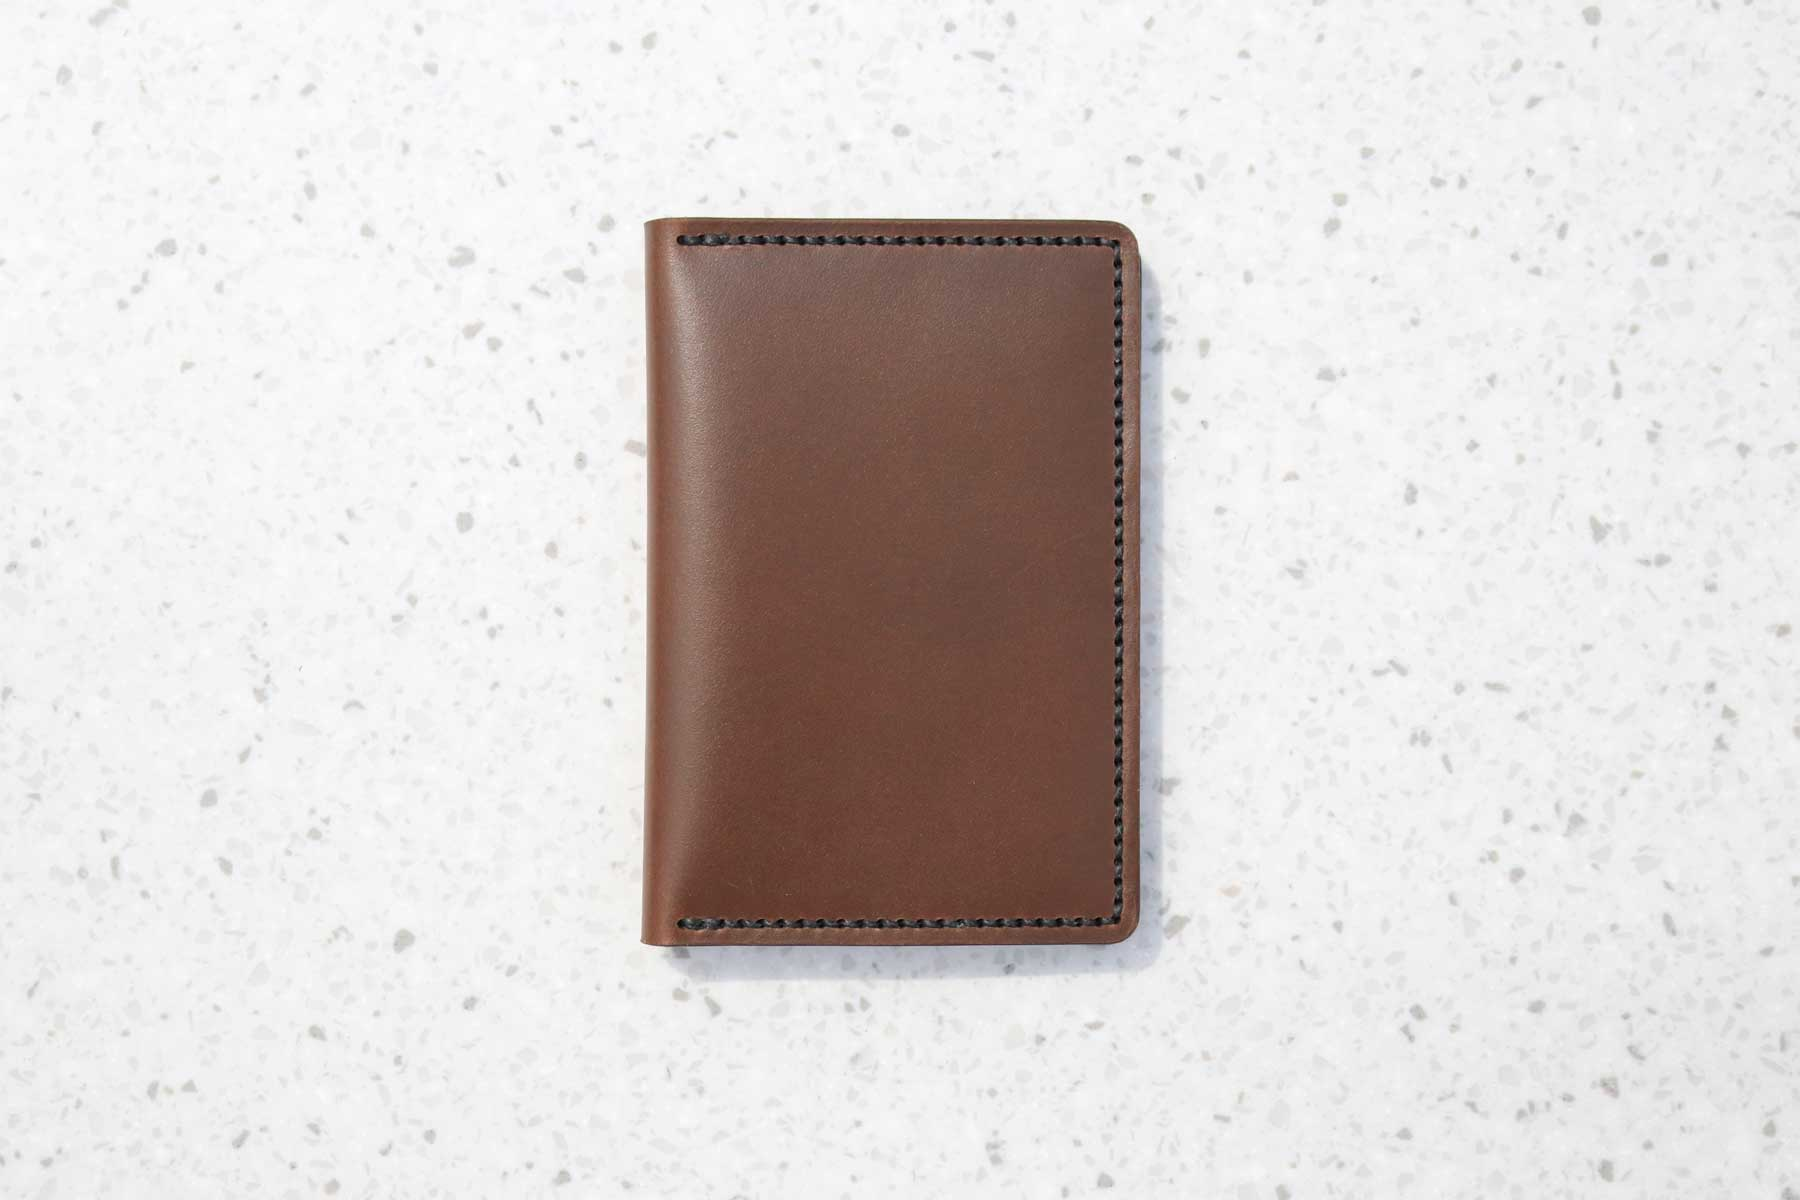 Passport-Holder-Brown-06.jpg